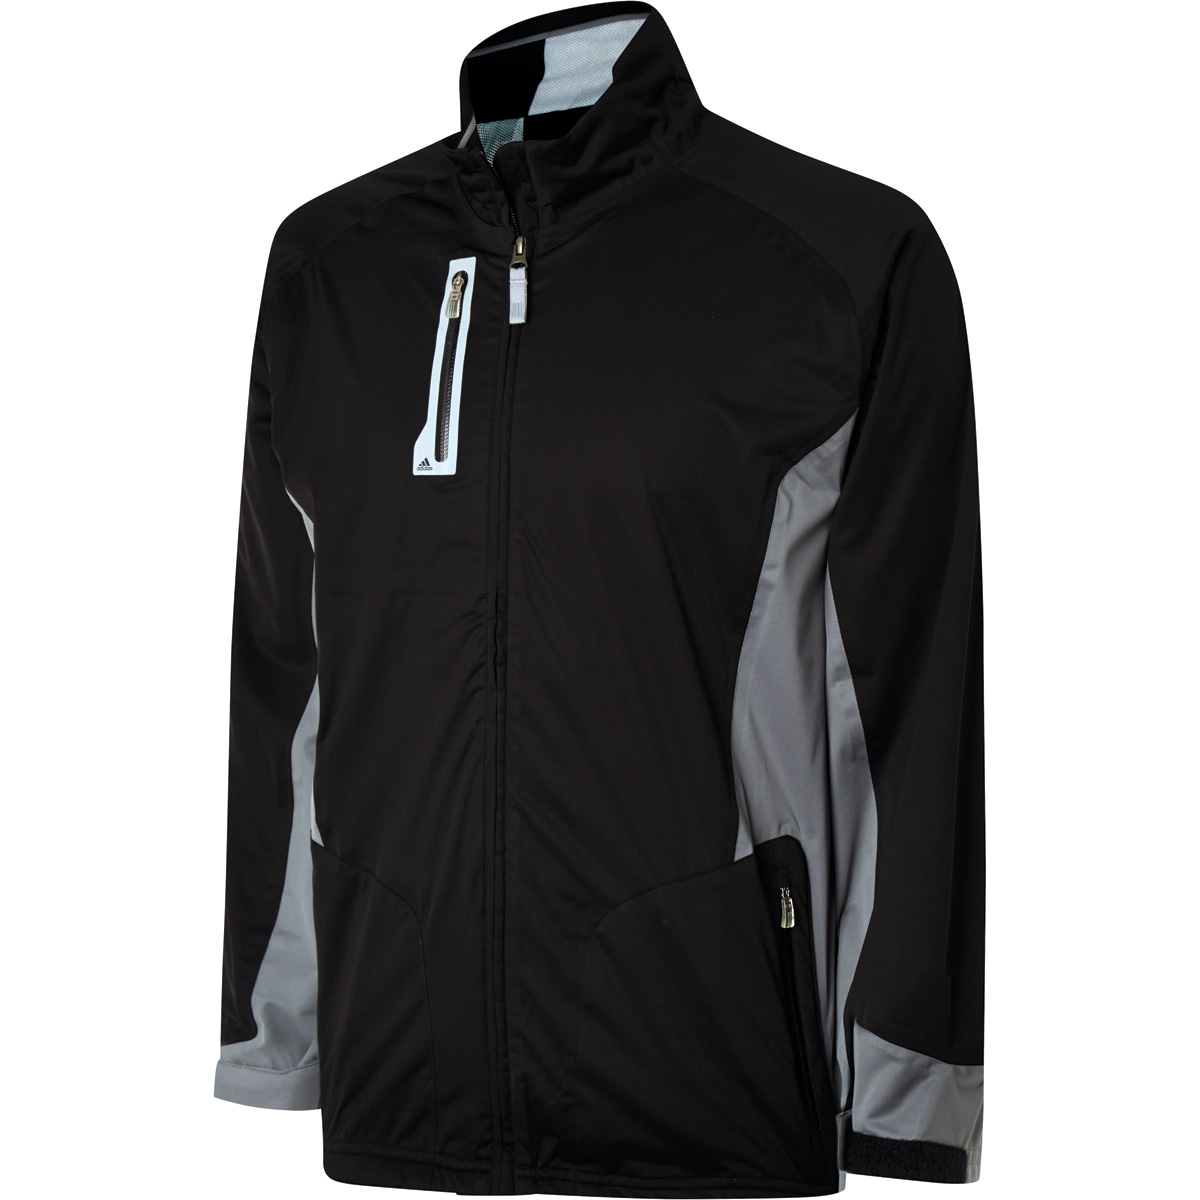 Adidas Golf Mens Climaproof Advance Rain Jacket Waterproof